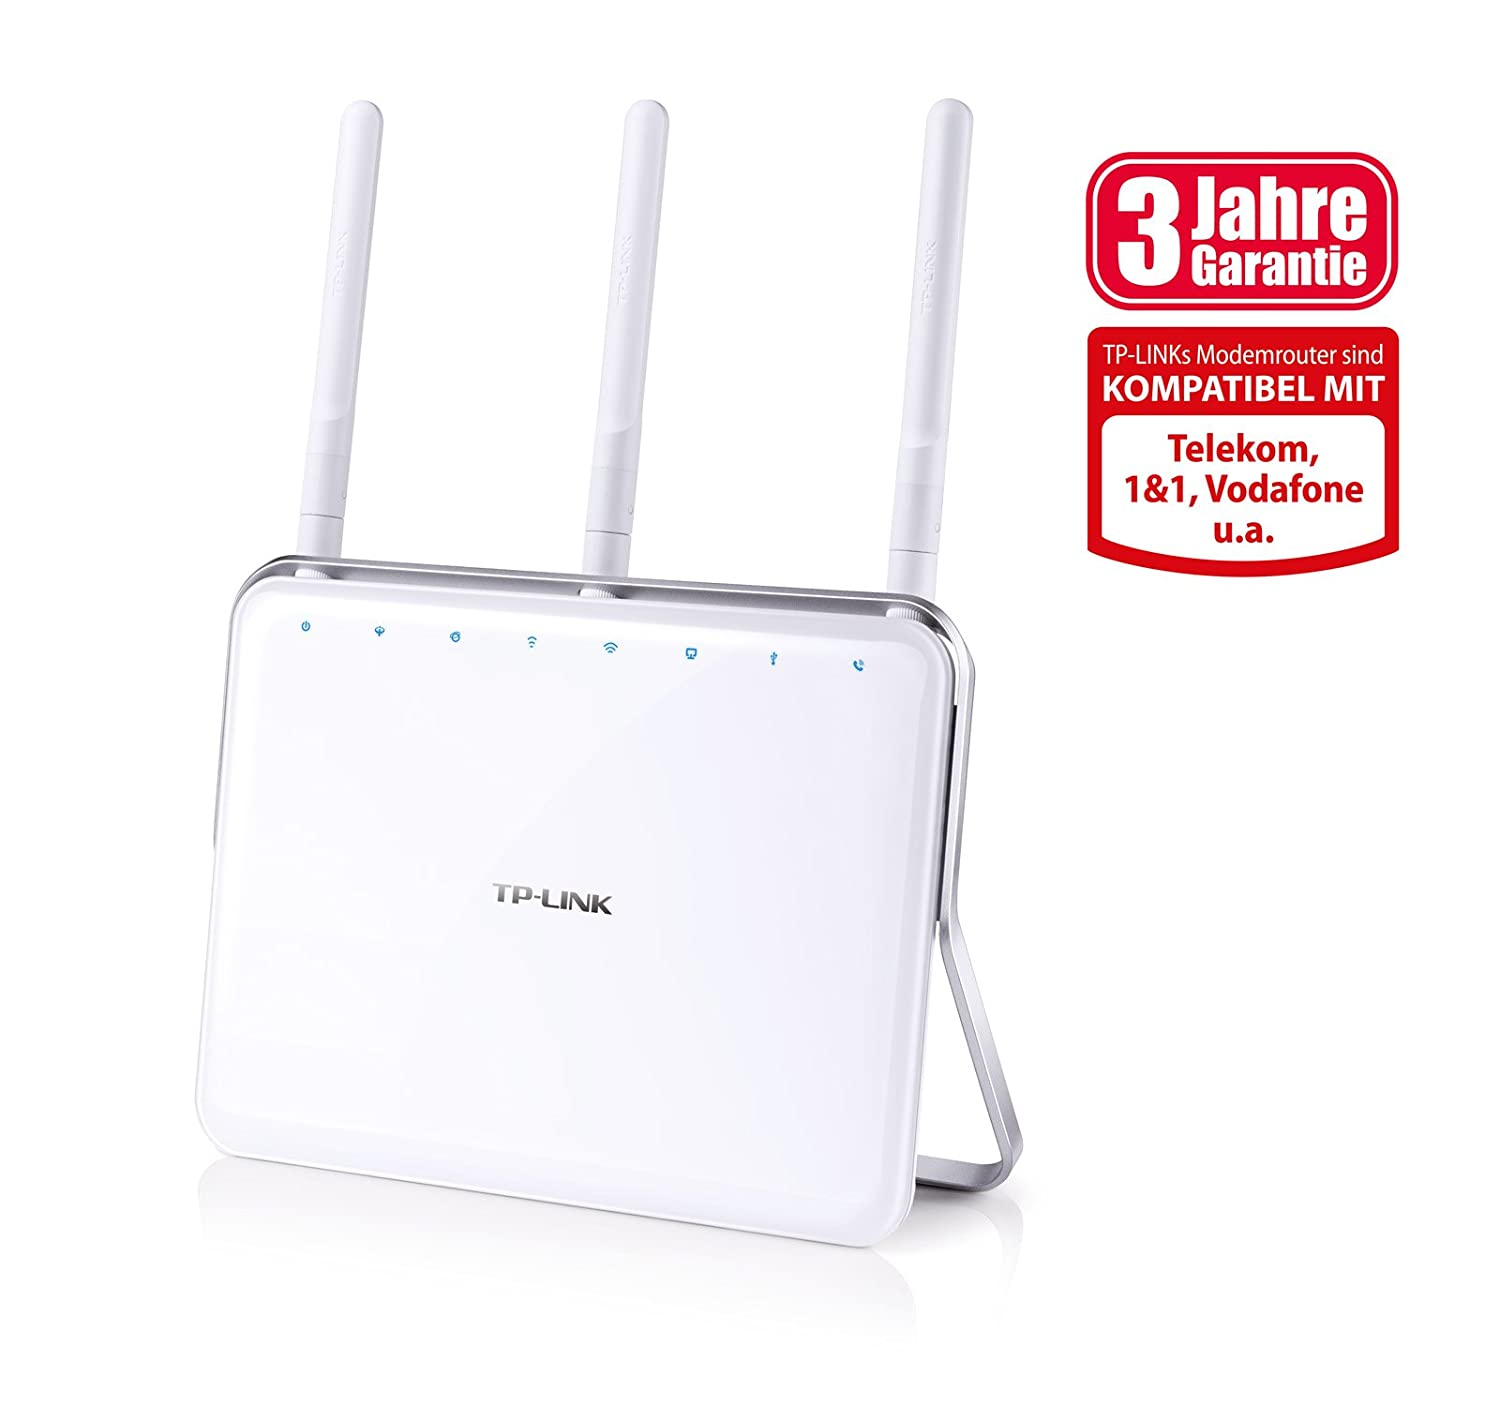 TP Link Archer VR900v AC1900 WLAN Telefonie Modemrouter Amazon